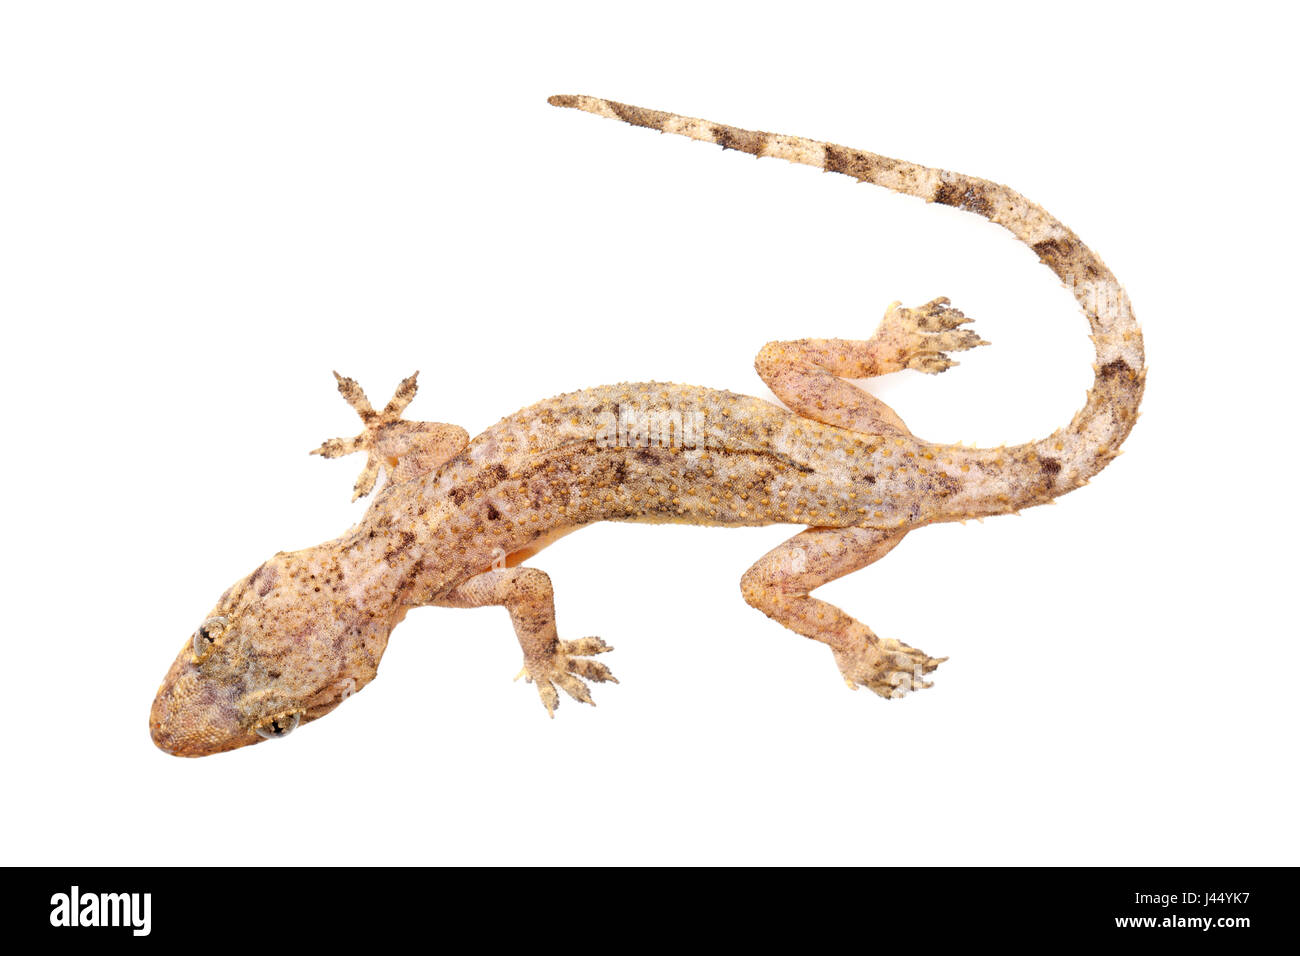 rendered photo of a moreau's tropical house gecko stock photo